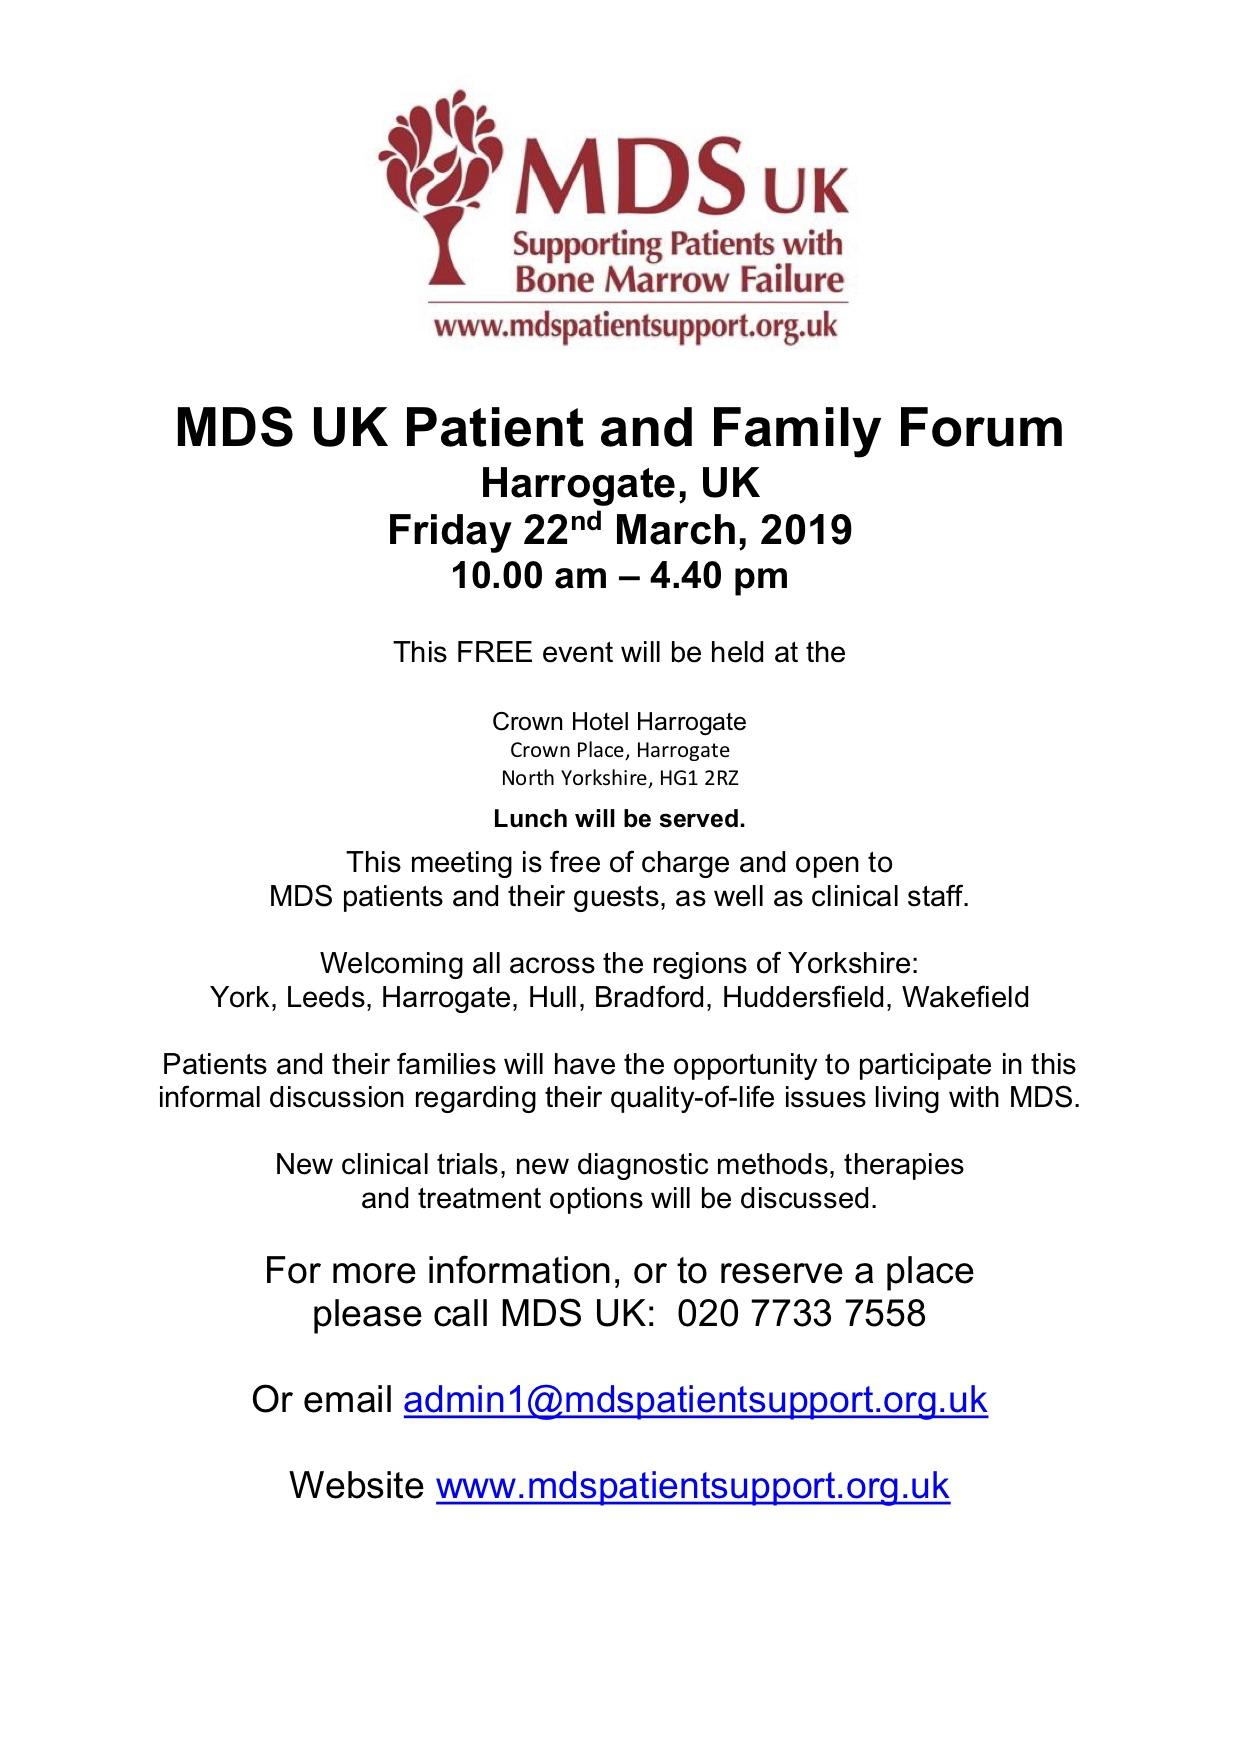 MDS UK Patient and Family Forum – Friday 22nd March 2019